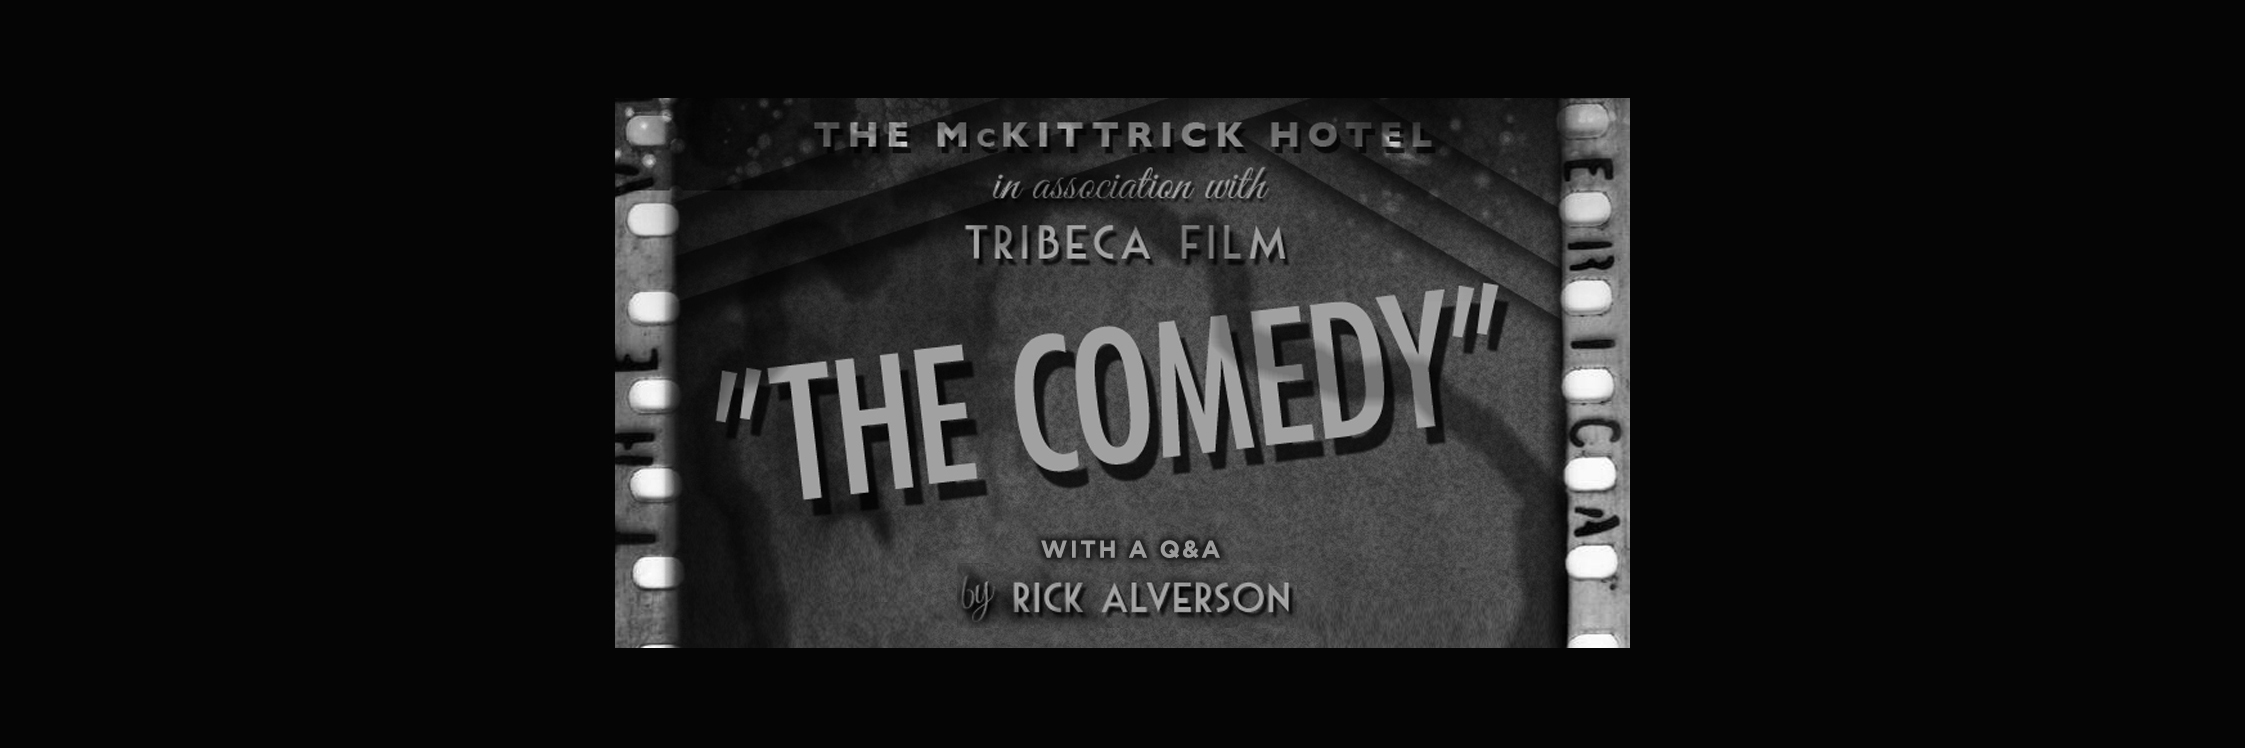 TheComedy_McKittrick_1_